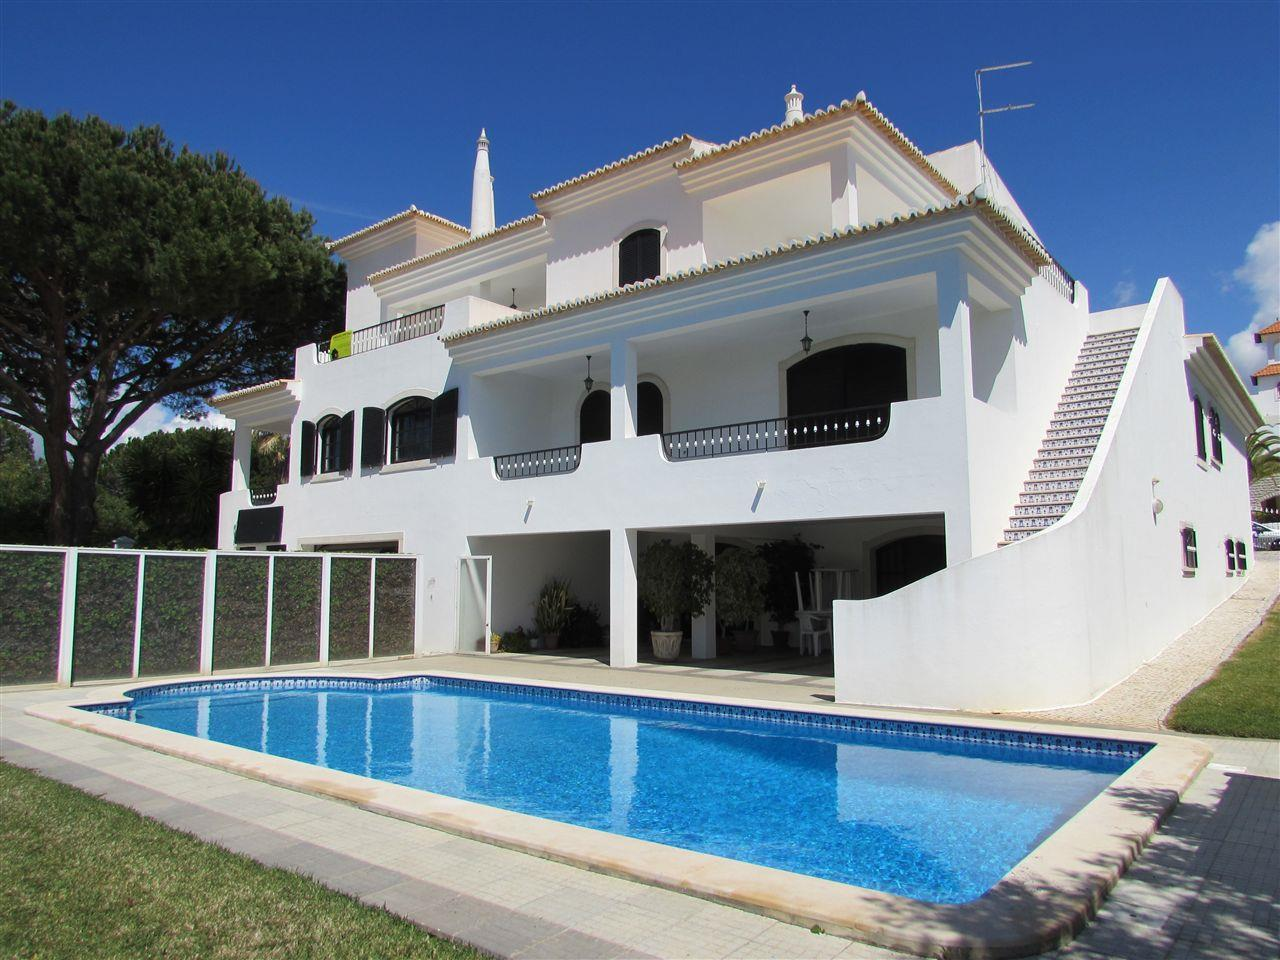 獨棟家庭住宅 為 出售 在 Detached house, 7 bedrooms, for Sale Loule, Algarve, 8125-001 葡萄牙